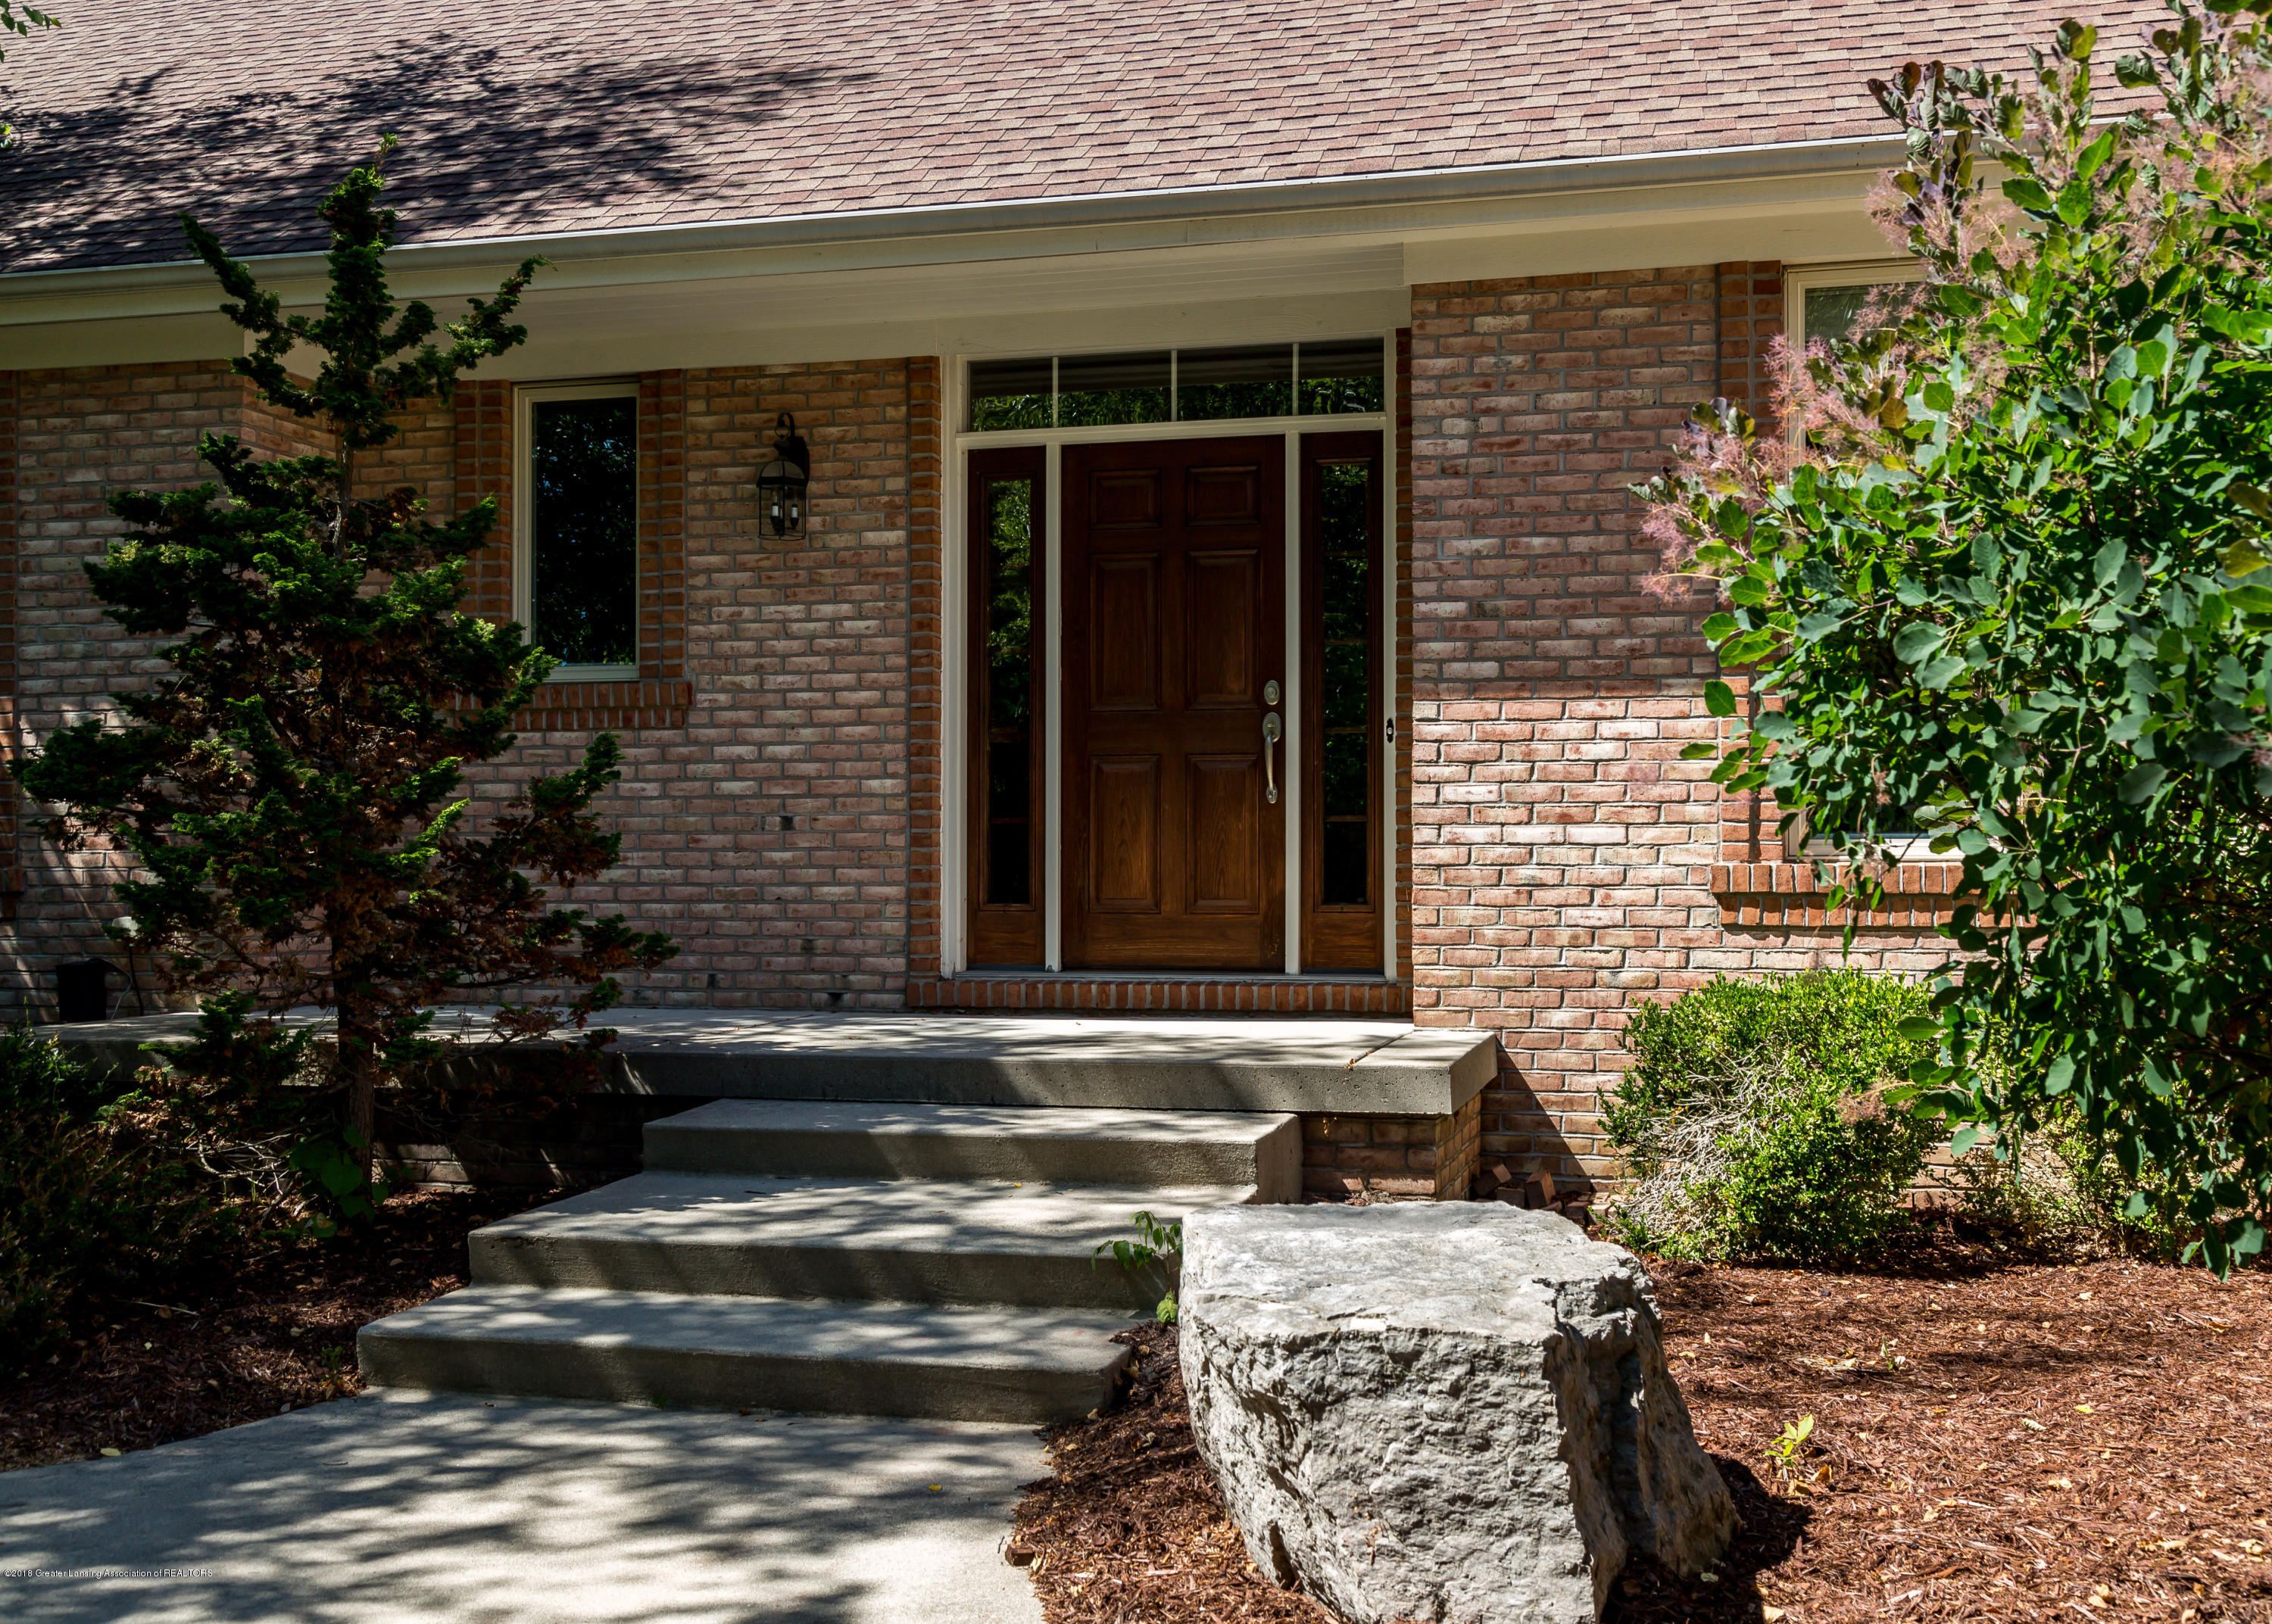 2016 Belwood Dr - 20180710-942A3188 - 9